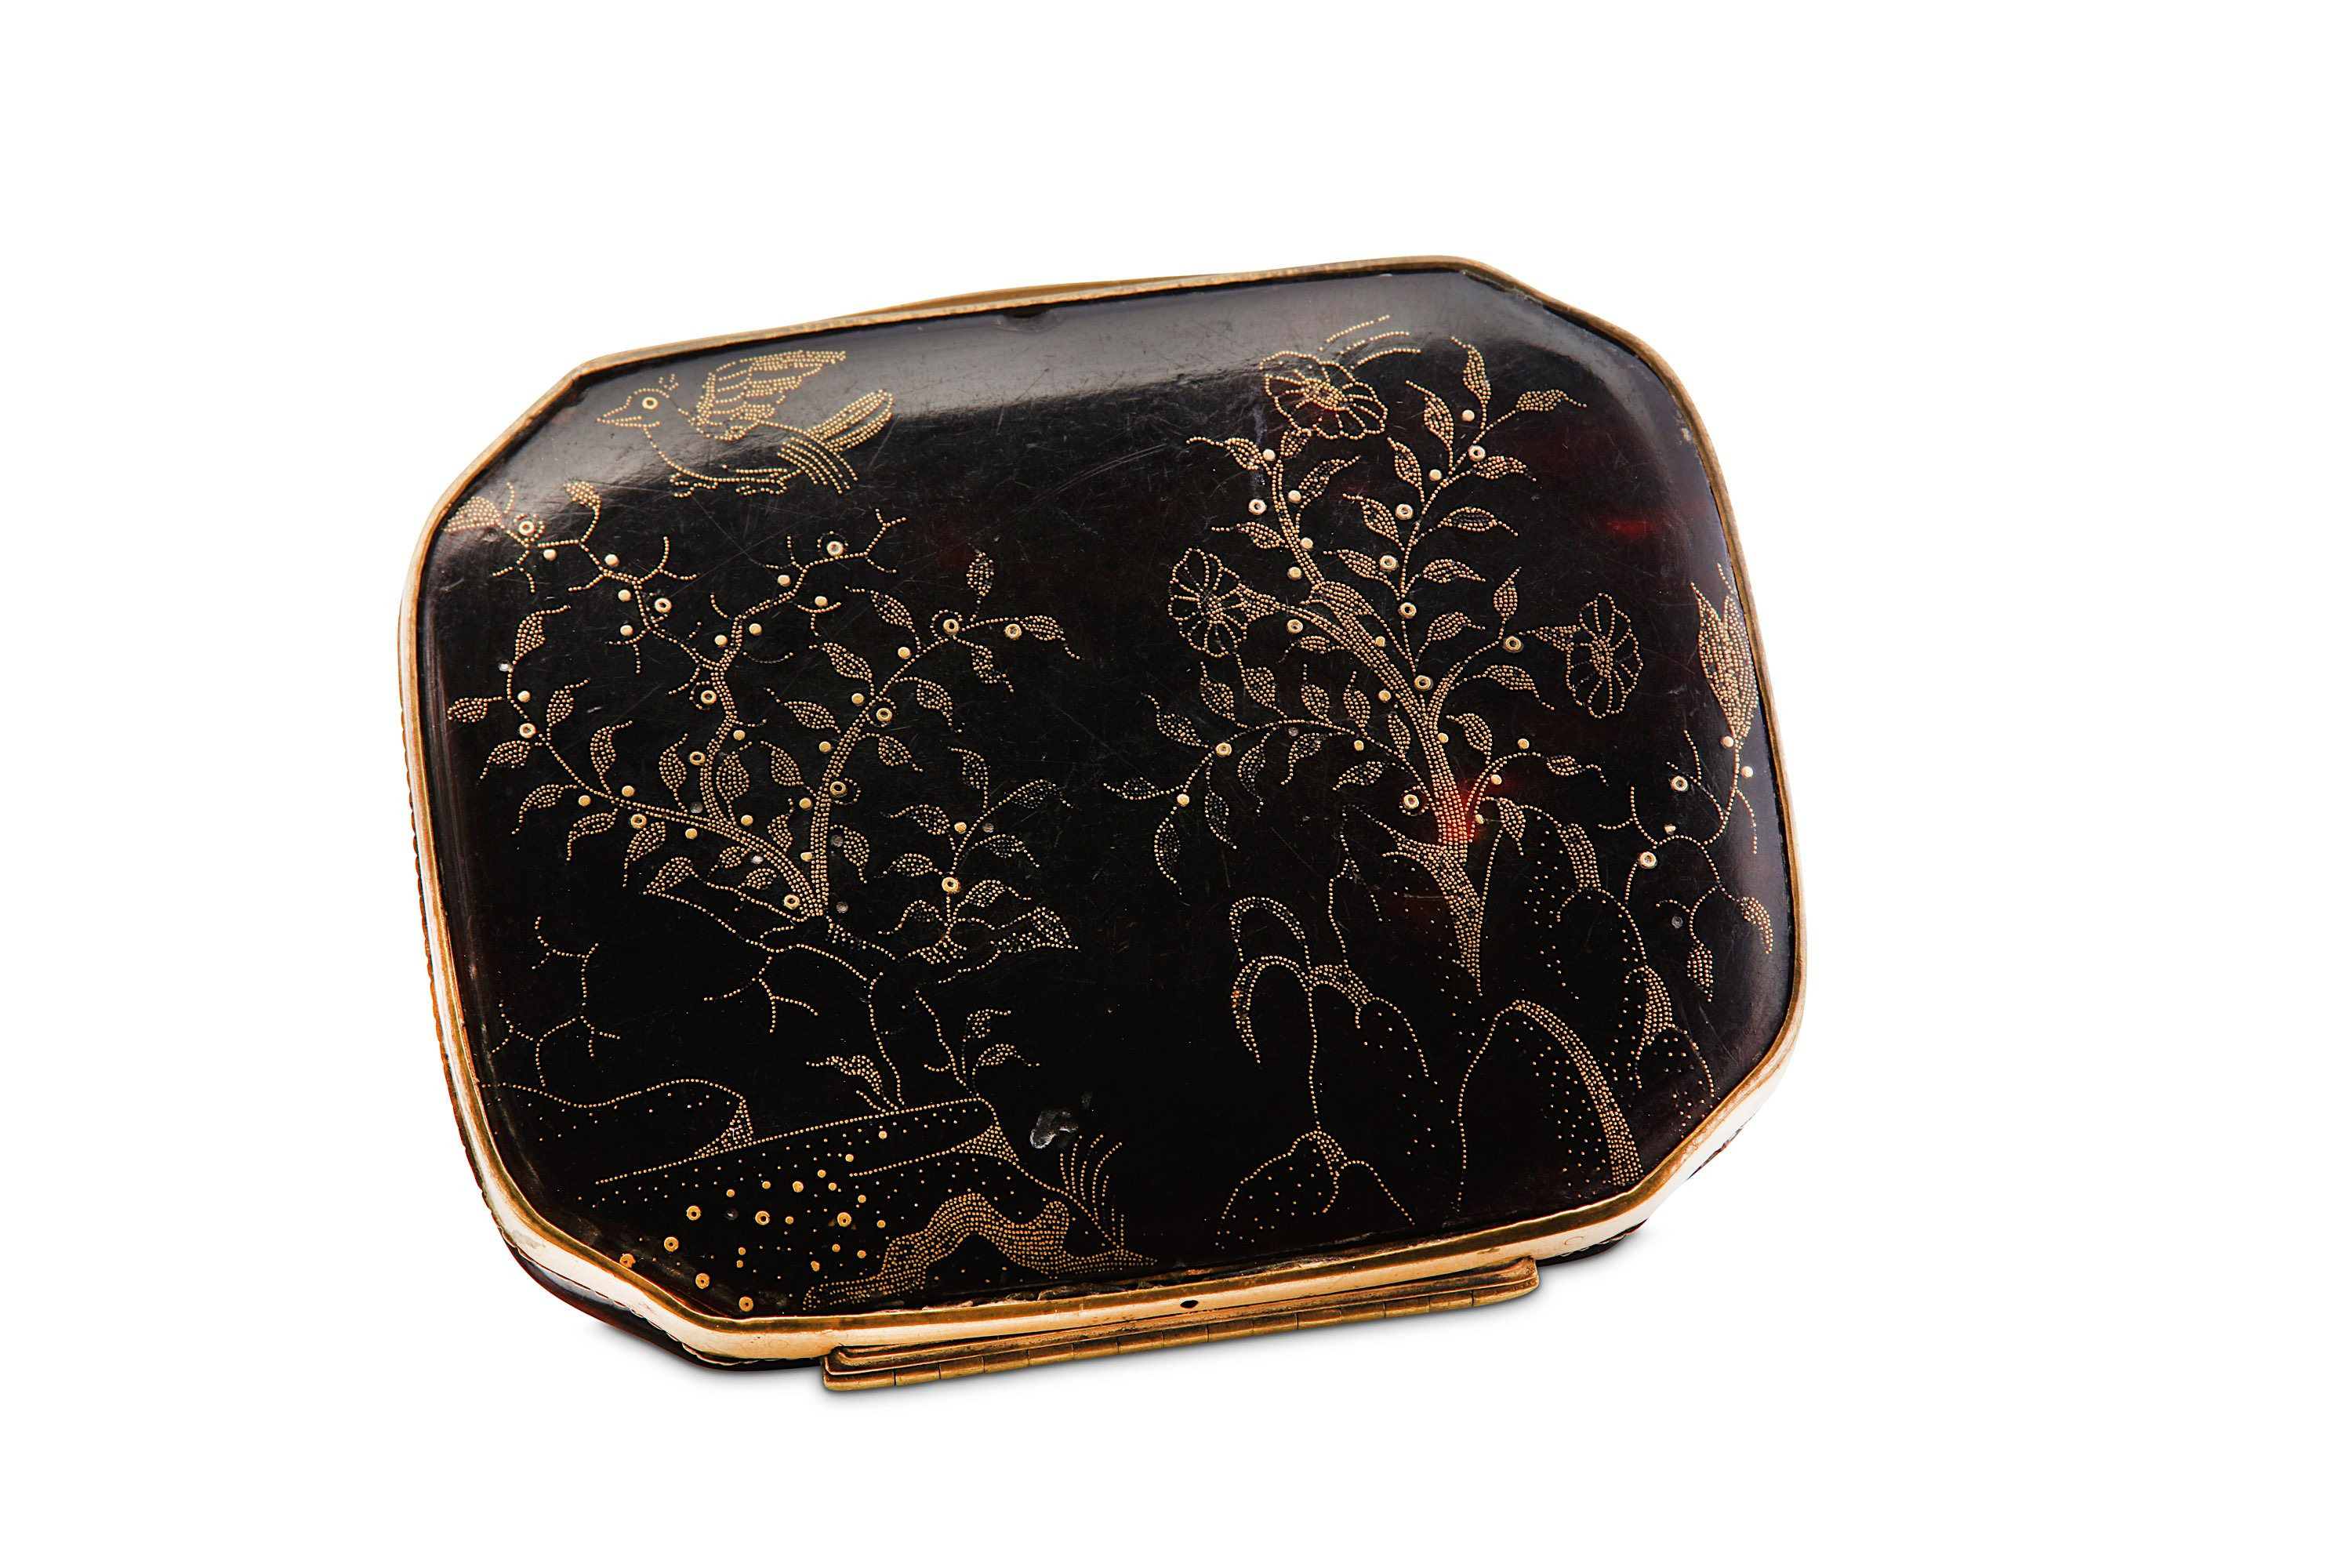 Lot 53 - An early 18th century tortoiseshell and gold pique work snuff box continental circa 1710